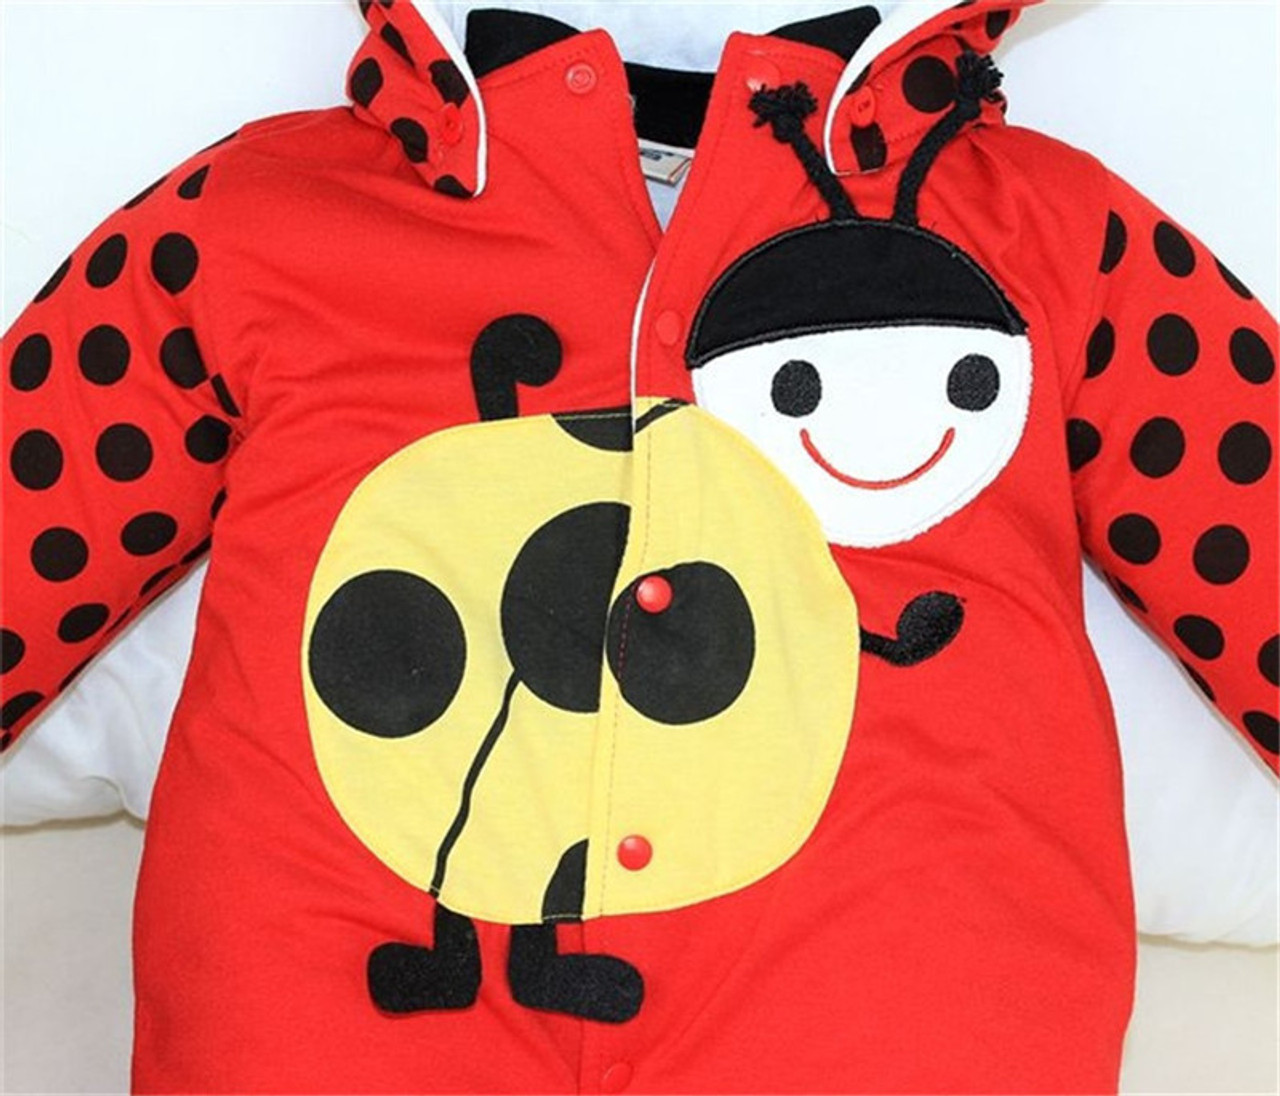 beb83d841 Cotton-padded Baby s Romper Ladybug and Cows Boy  Girl Jumpsuit ...